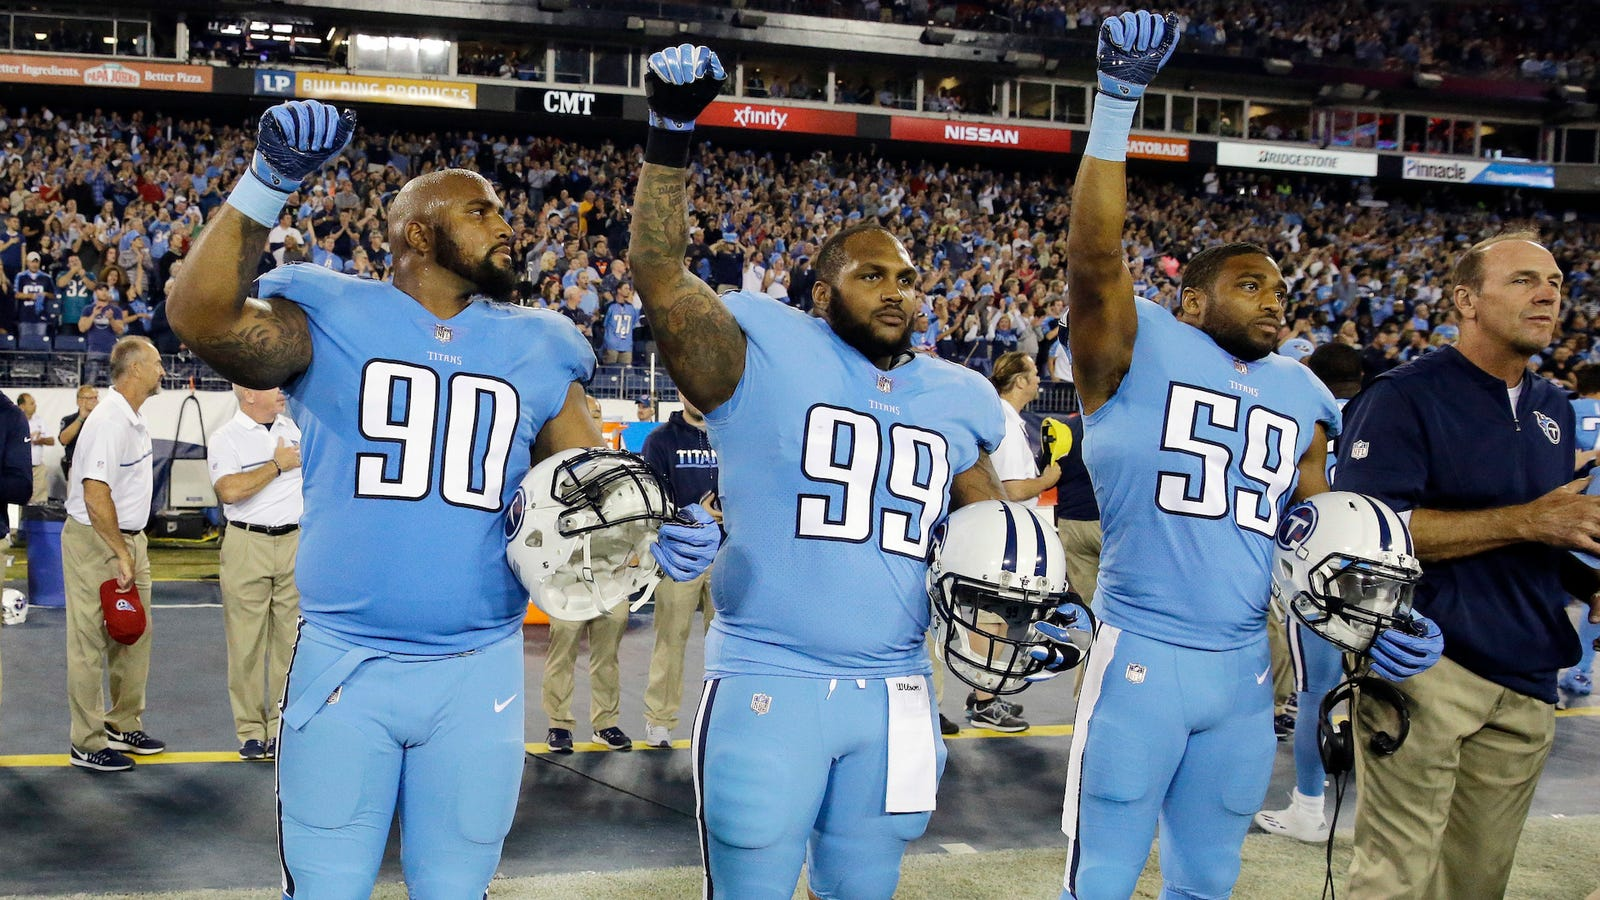 Titans  Jurrell Casey Says He ll Keep Protesting Injustice Despite NFL s  New Ant. 9b19f3ade